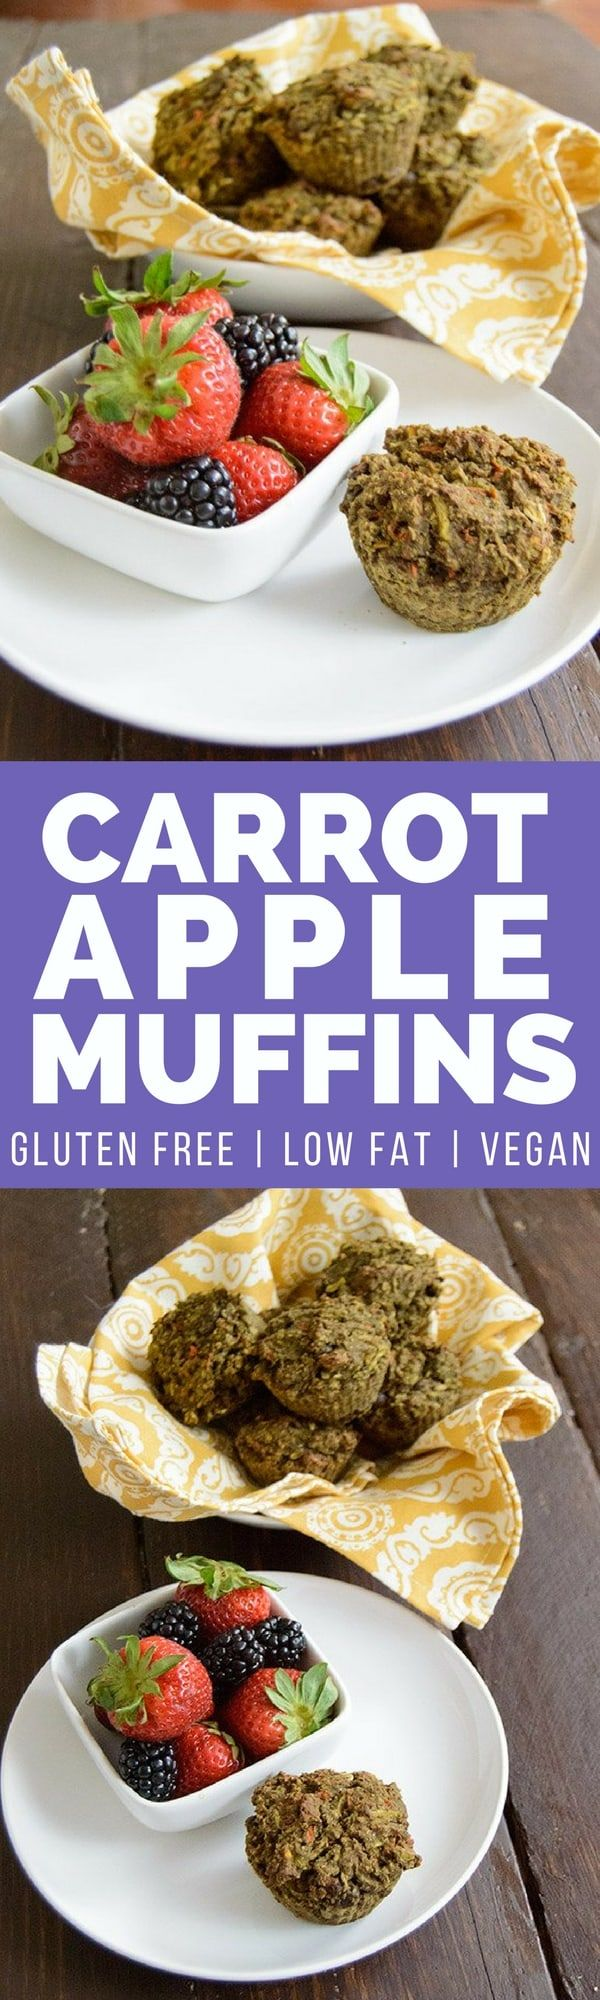 These flax carrot apple muffins are a healthy way to start the day. This vegan, gluten free, low fat recipe is perfect for busy days!   bitesofwellness.com #lowfat #vegan #glutenfree